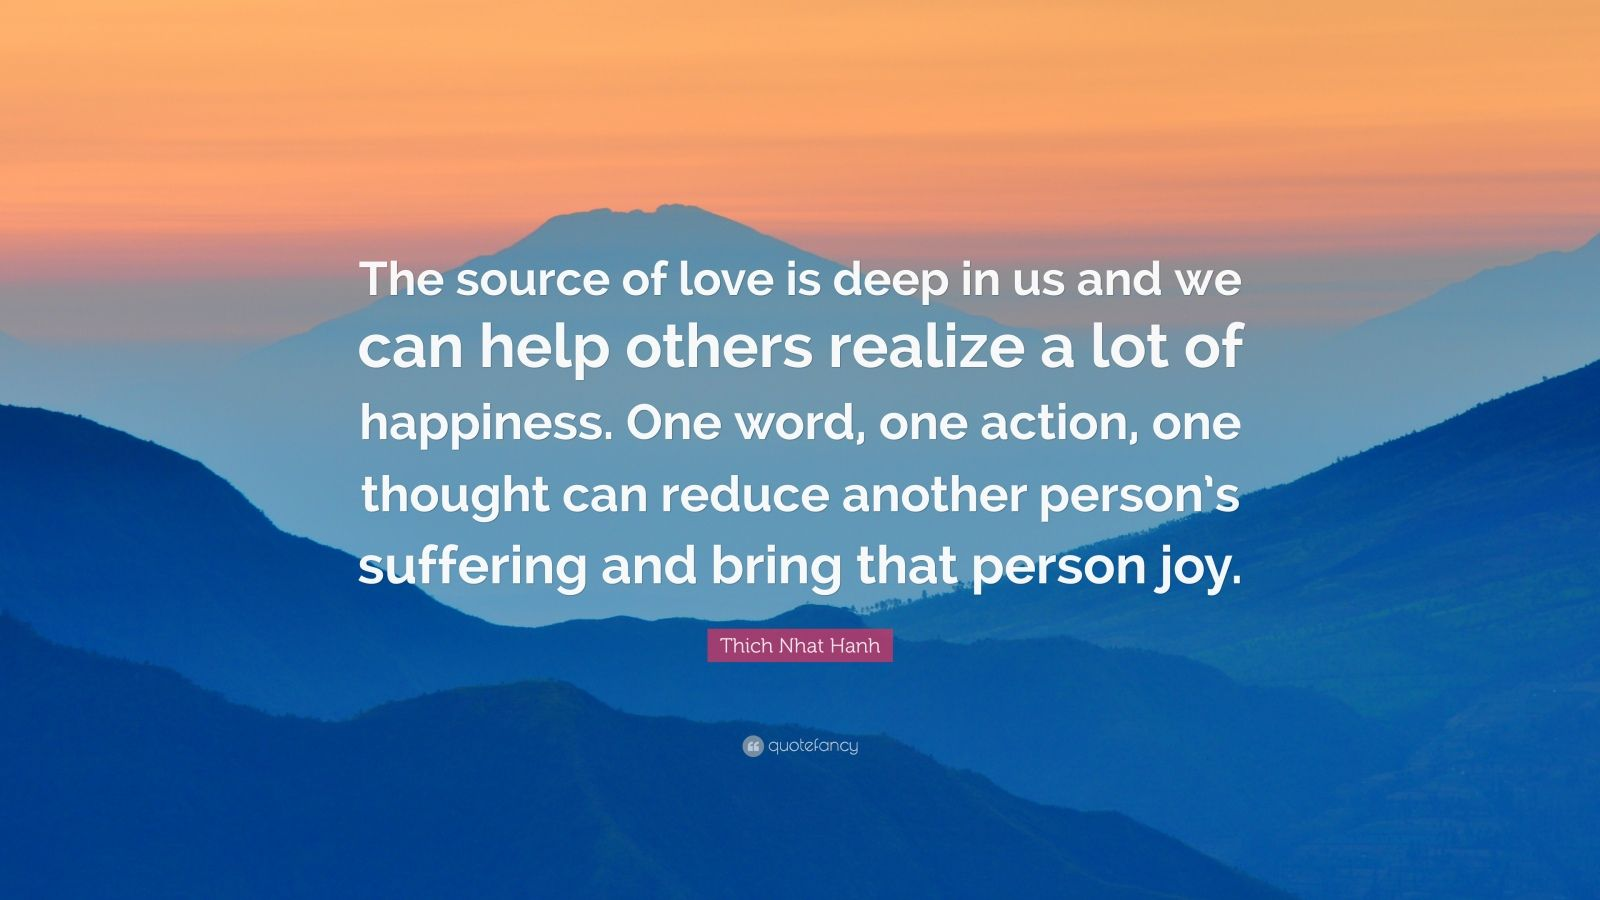 """Thich Nhat Hanh Quote: """"The source of love is deep in us and we can help others realize a lot of happiness. One word, one action, one thought can reduce another person's suffering and bring that person joy."""""""